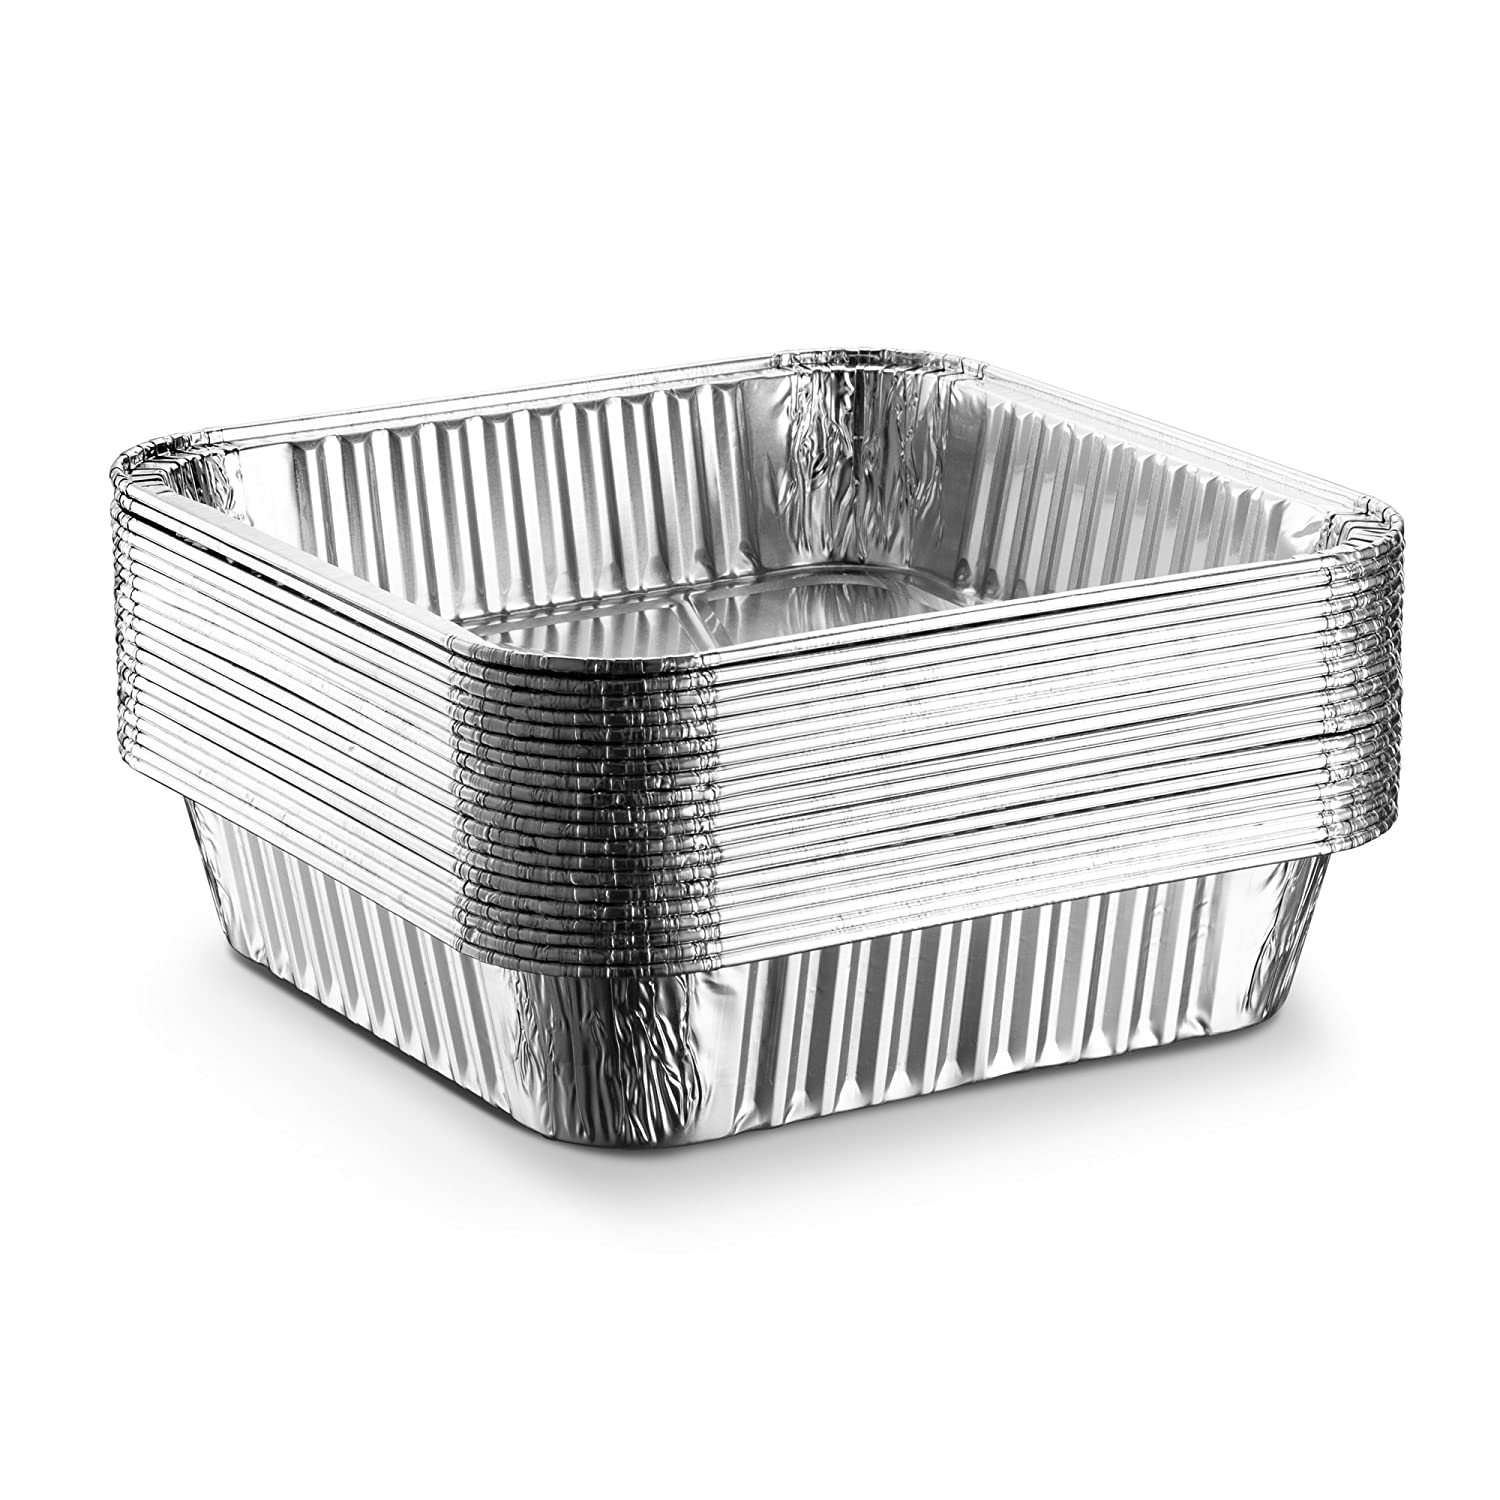 Roasting Pack of 30 Broiling Propack Square baking Pans 8/'/'x8/'/' Disposable Aluminum Foil Baking Tins For Baking Cooking